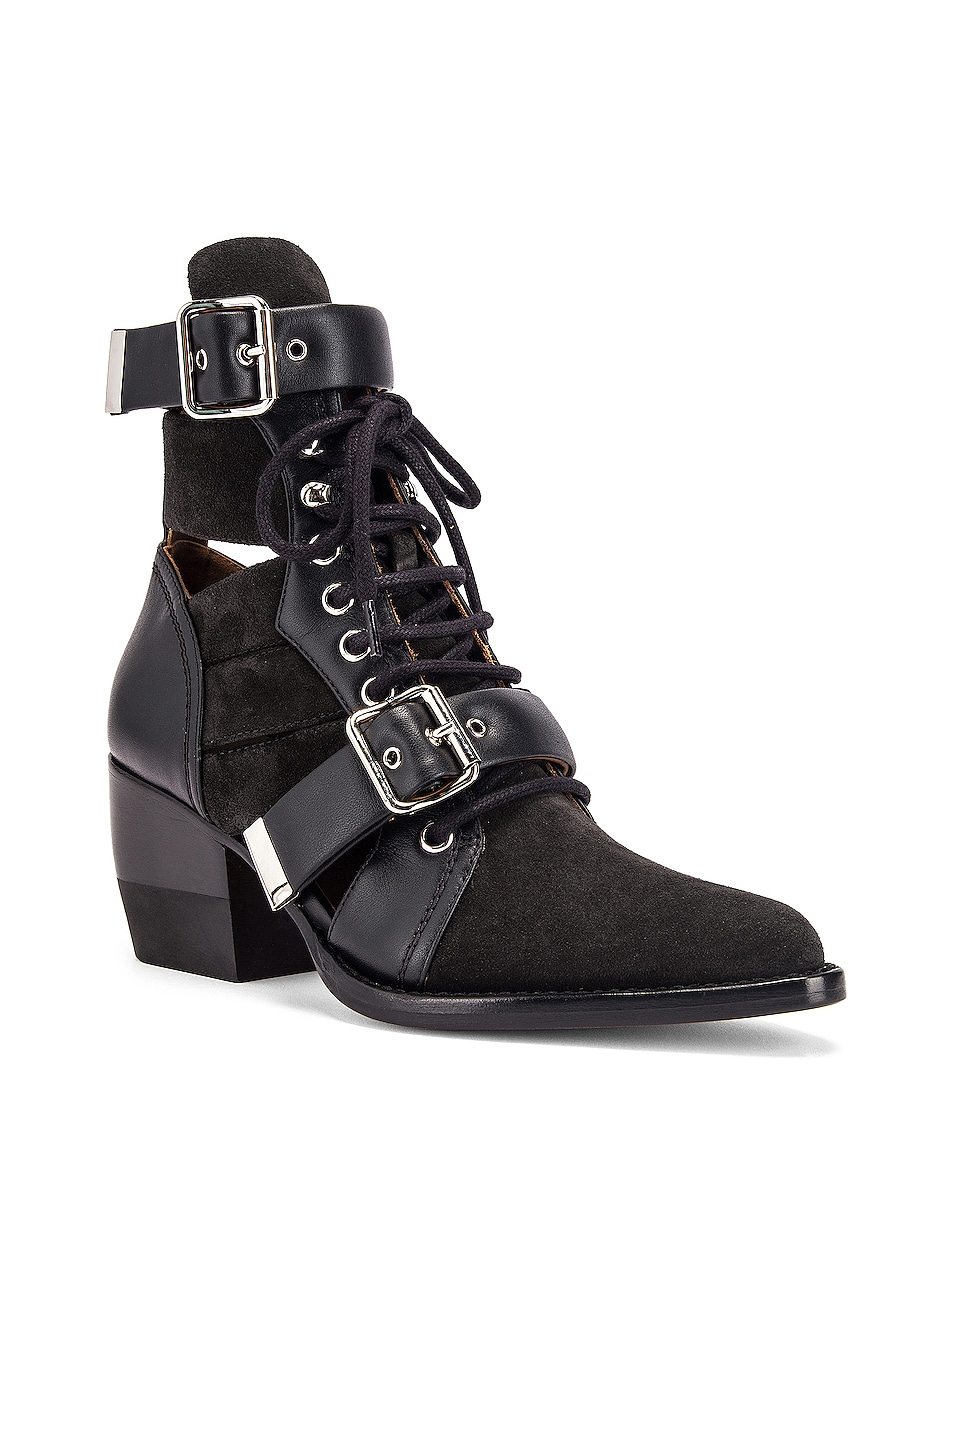 Image 2 of Chloe Lace Up Buckle Boots in Charcoal Black